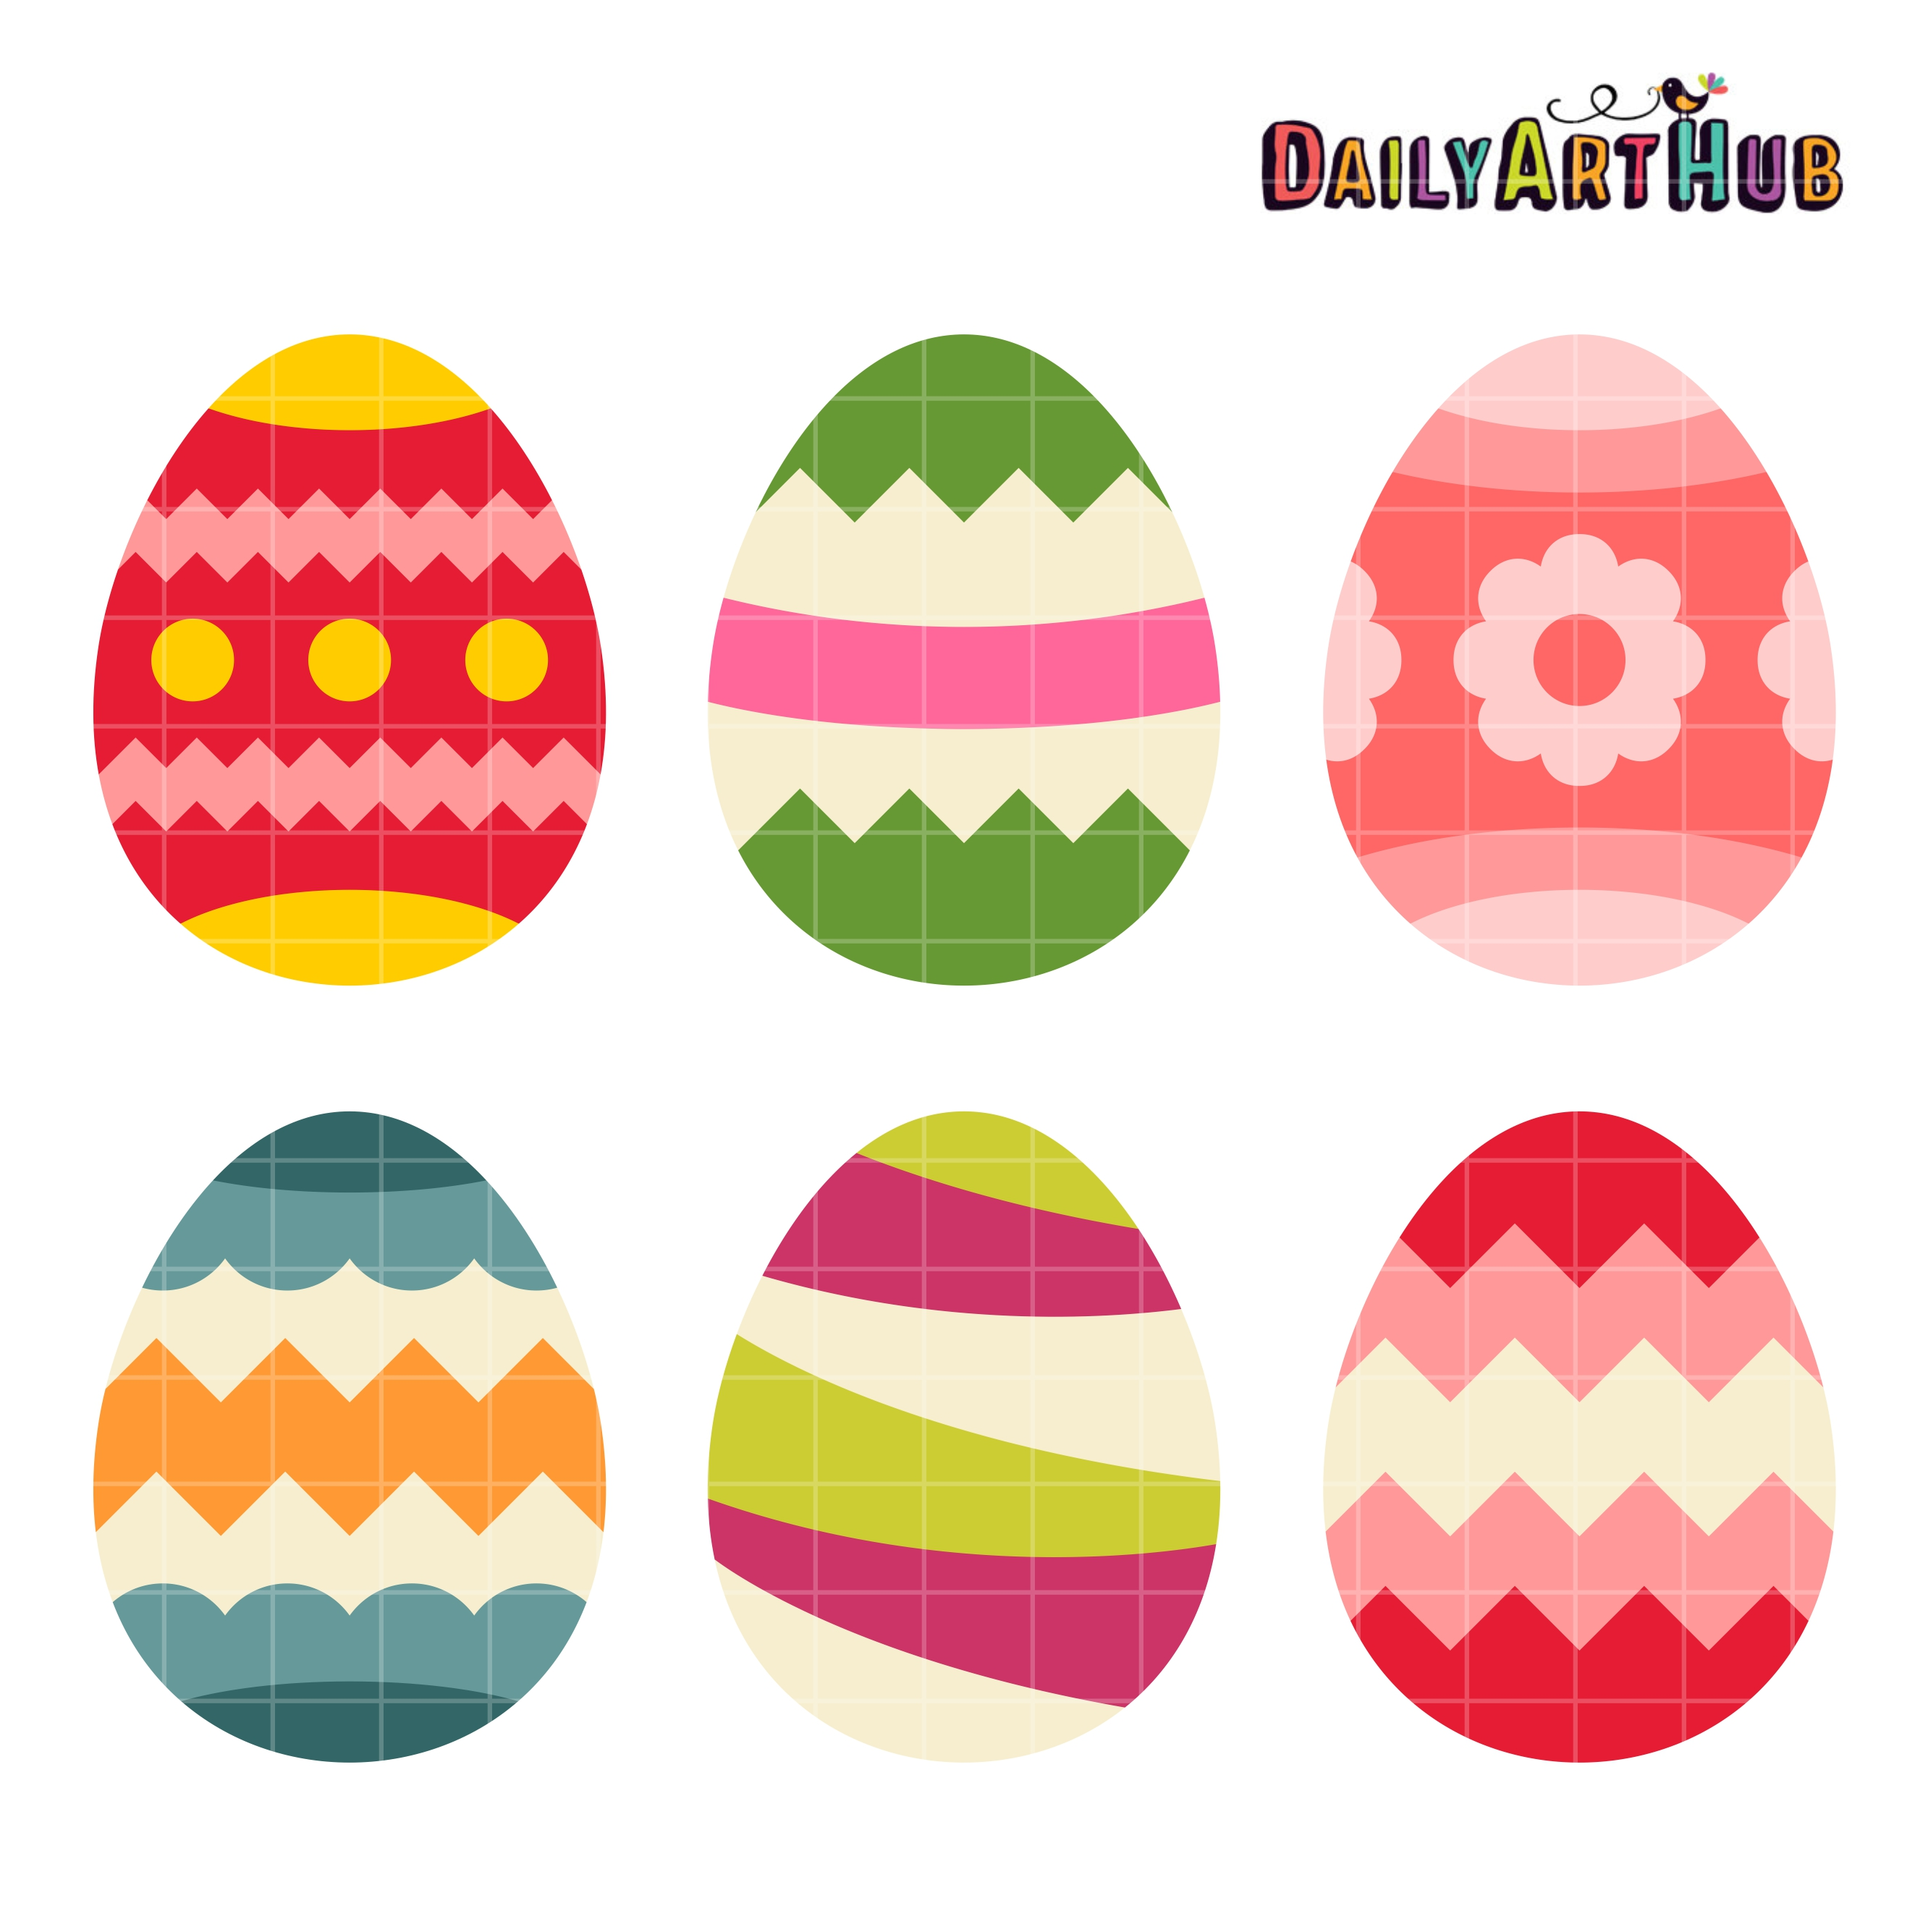 30 easter egg clipart image library stock 30 easter egg clipart - ClipartFest image library stock